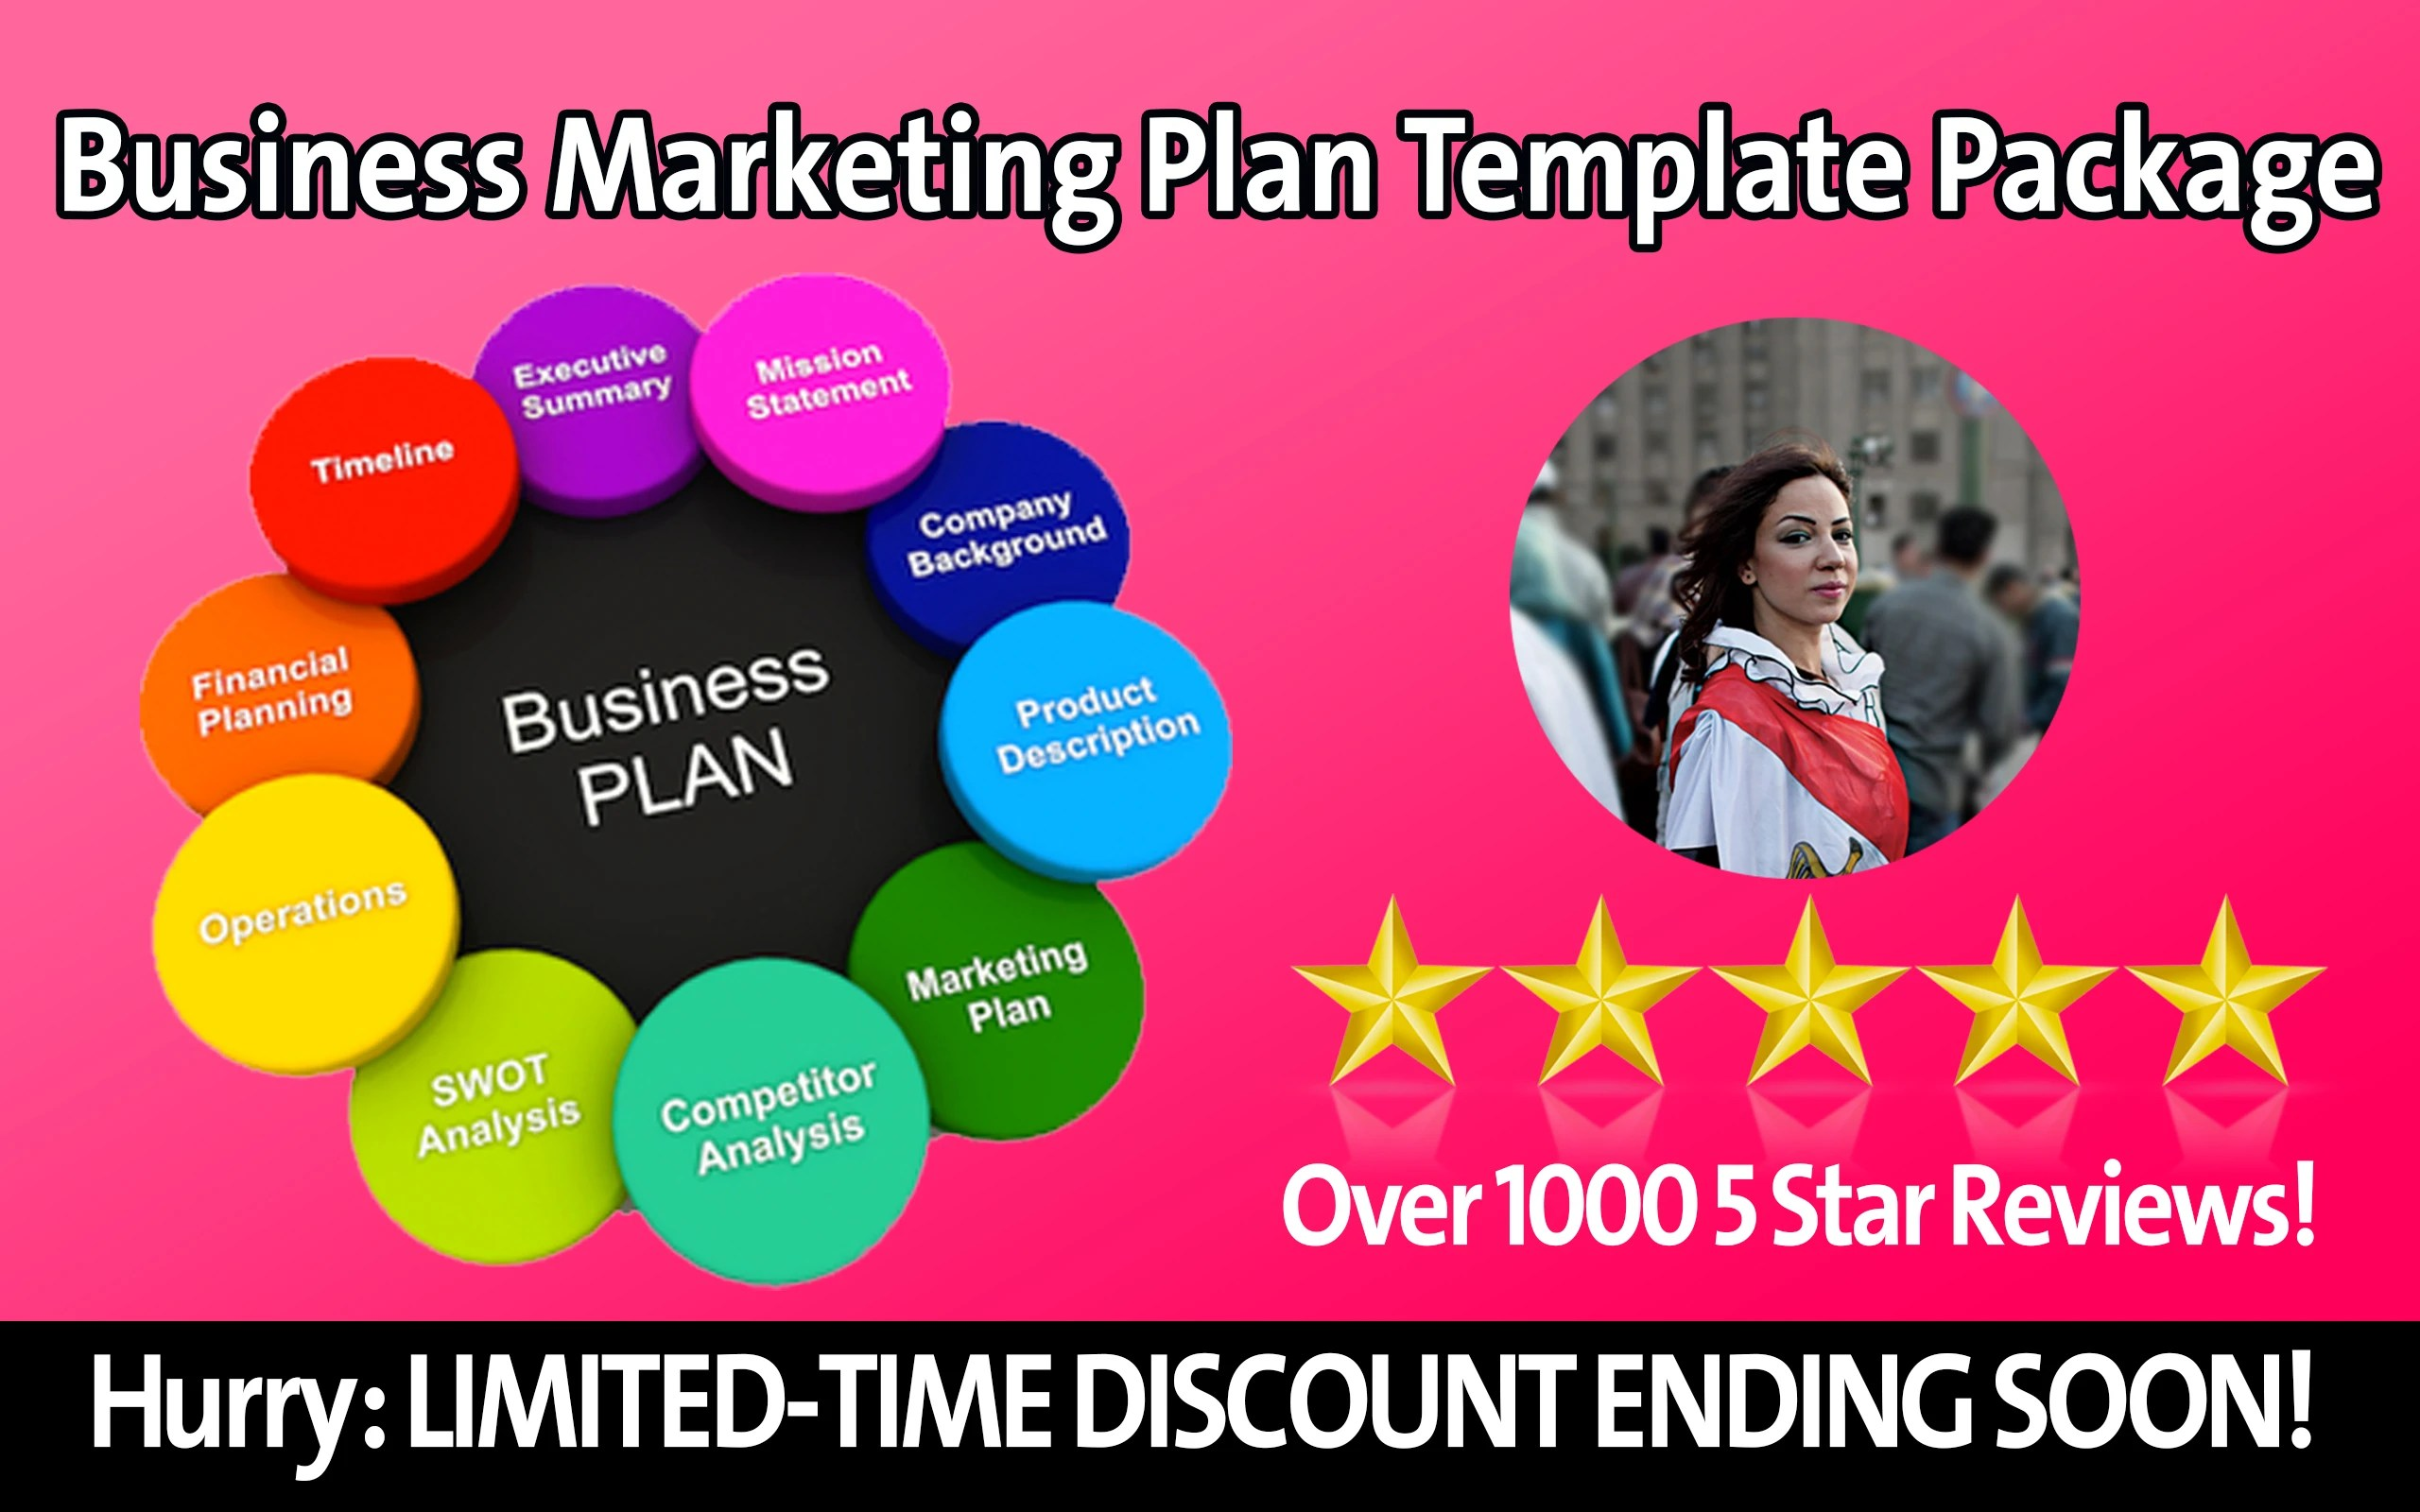 You want to make sure that you understand what kind of strategies need to be implemented and how they should be done to ensure that both marketing and sales expectations are met. Give Professional Business And Marketing Plan Template Package By Emailat Fiverr